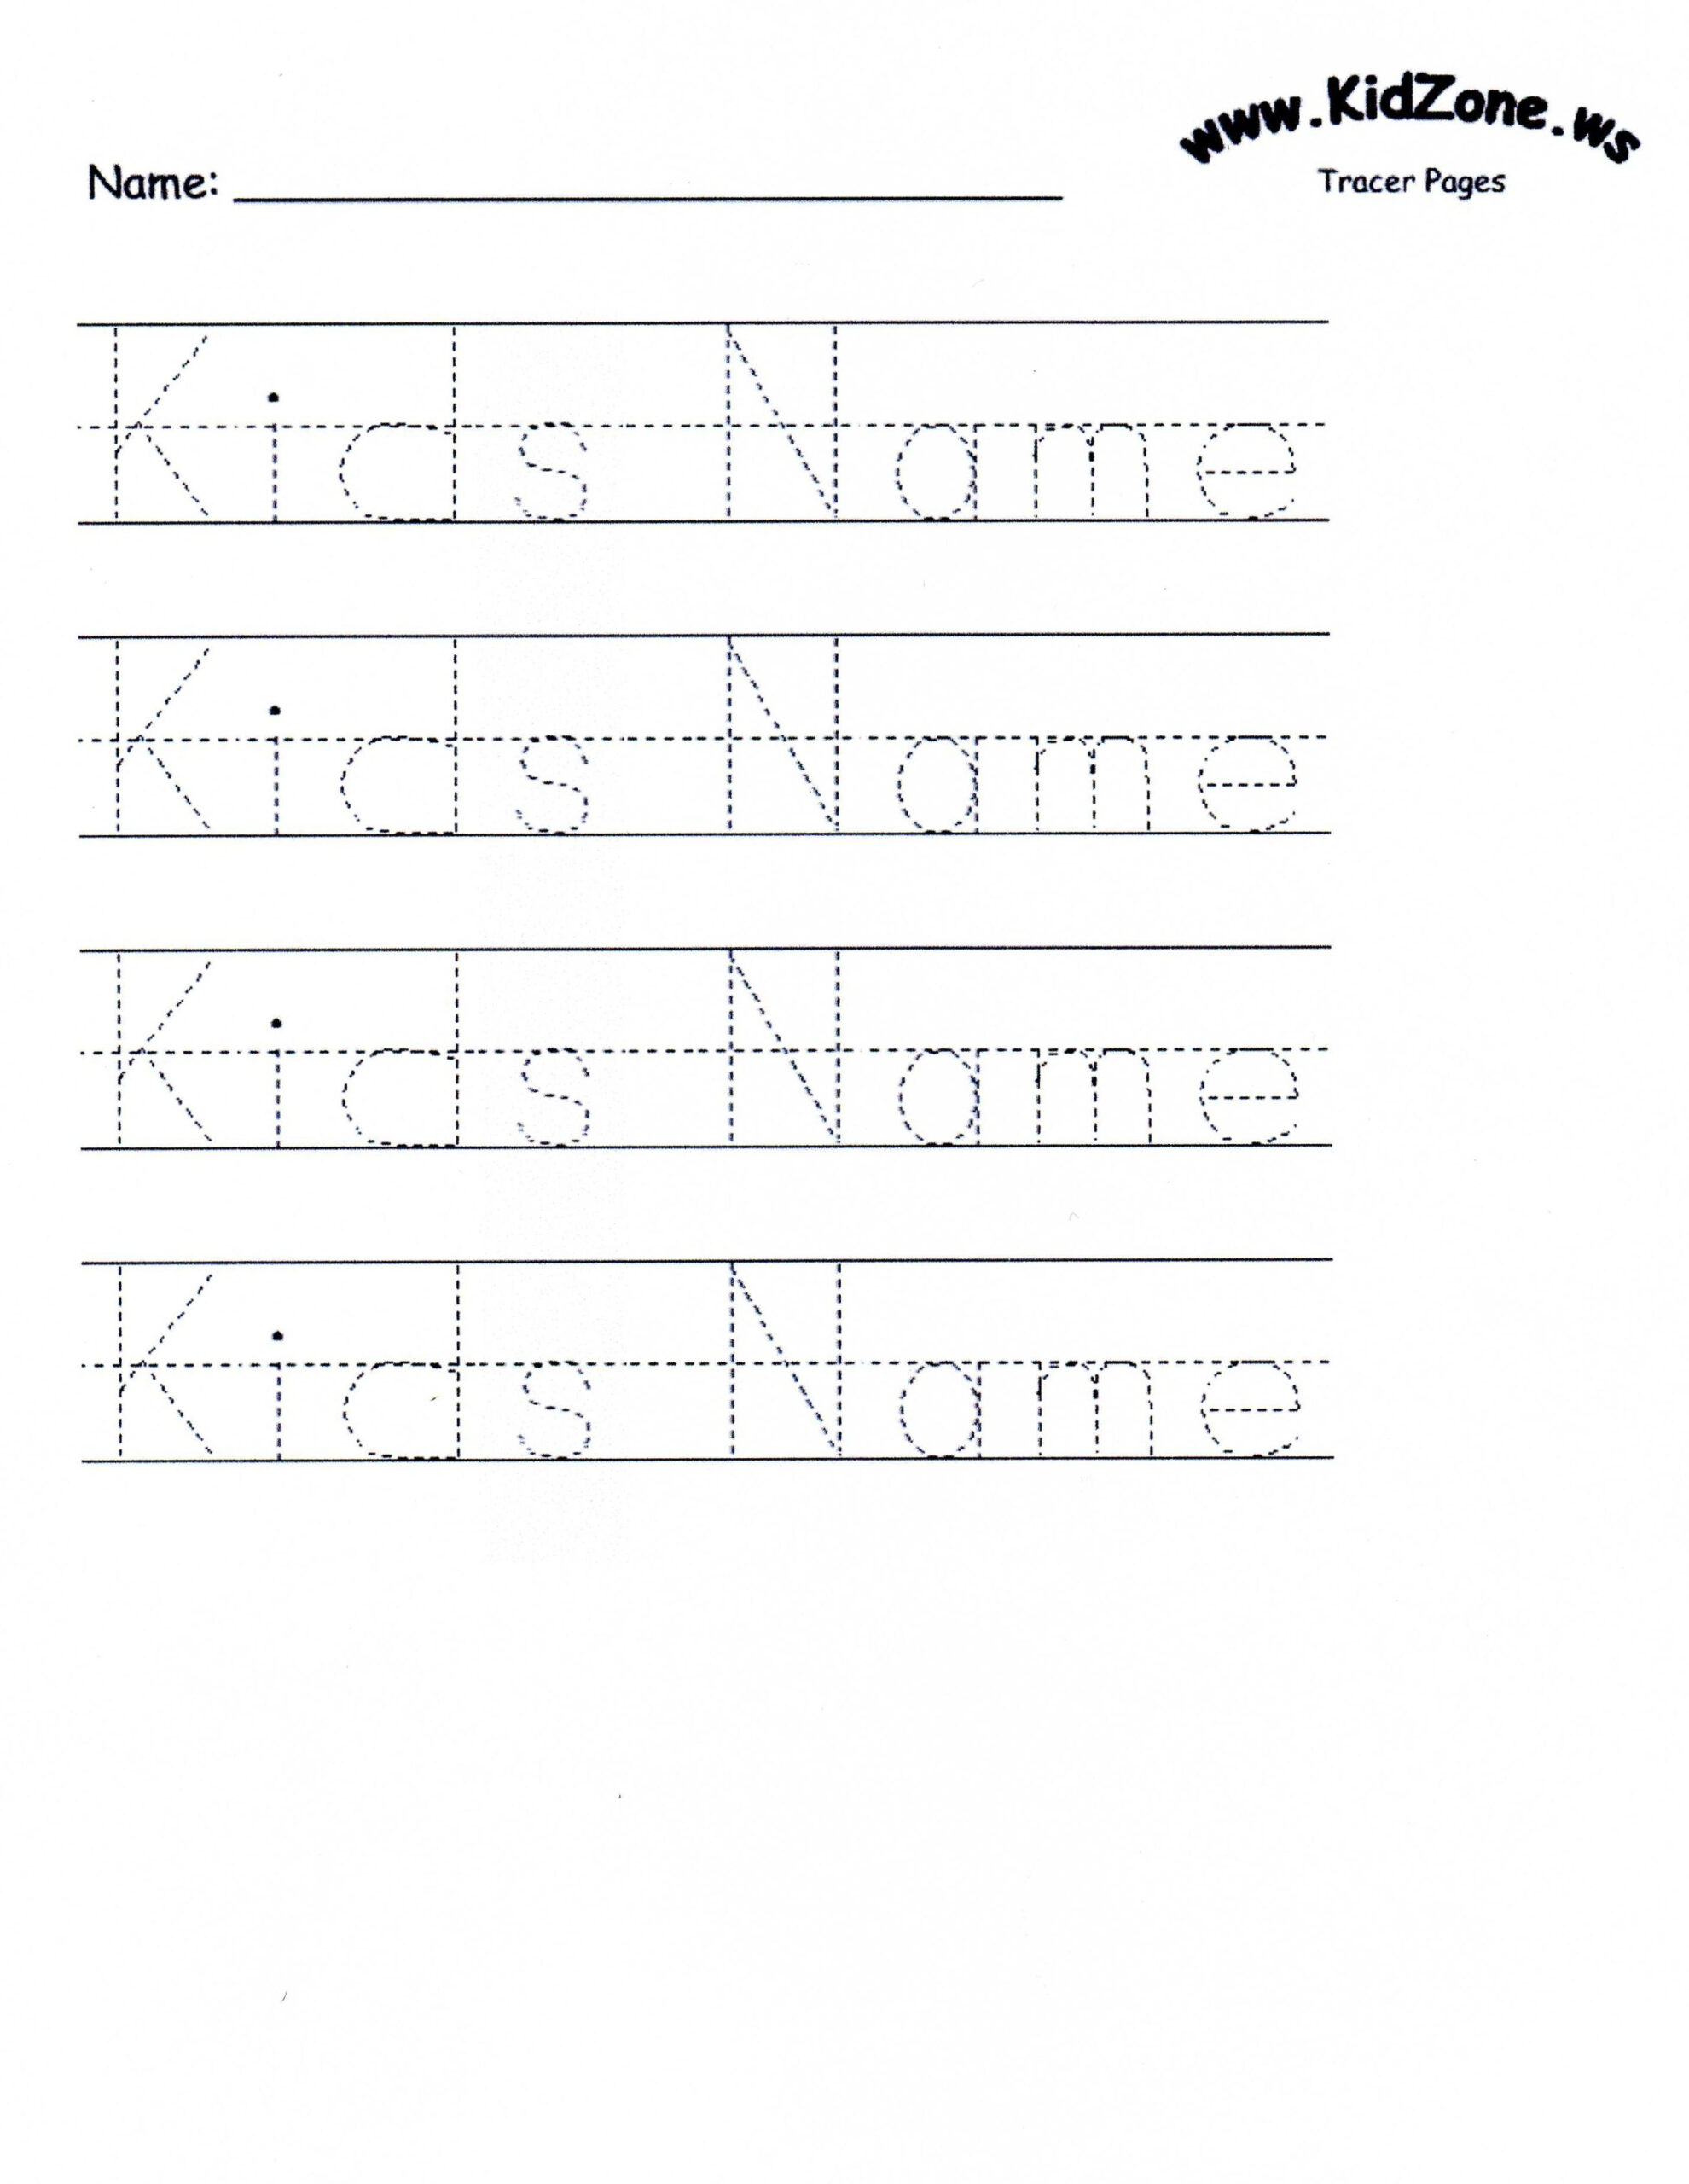 Custom Tracer Pages | Tracing Worksheets Preschool, Name with Tracing Her Name